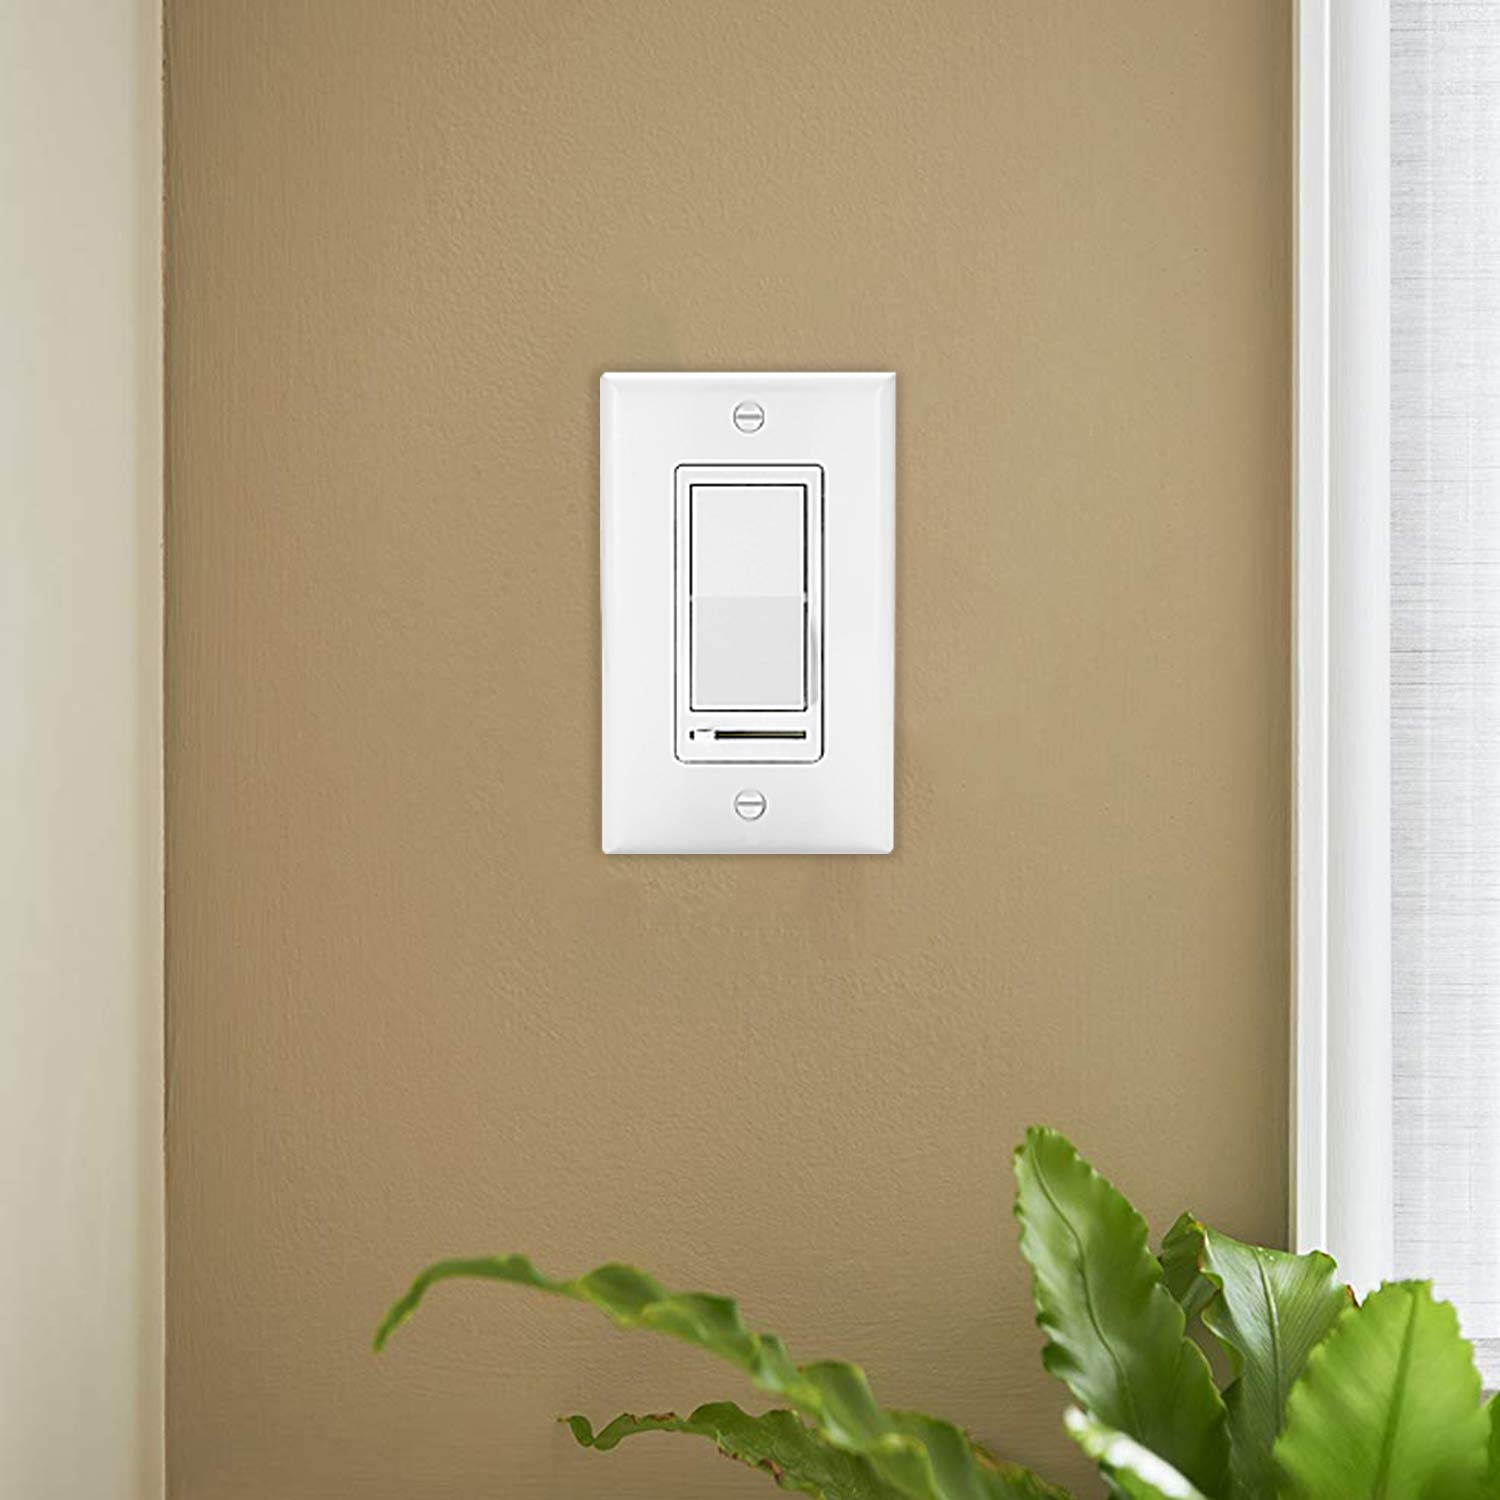 [10 Pack] BESTTEN Dimmer Light Switch, Universal Lighting Control, Single Pole or 3 Way, Compatible with LED Dimmable Lamp, CFL, Incandescent, Halogen Bulb, Decorative Wall Plate Included, White by BESTTEN (Image #2)